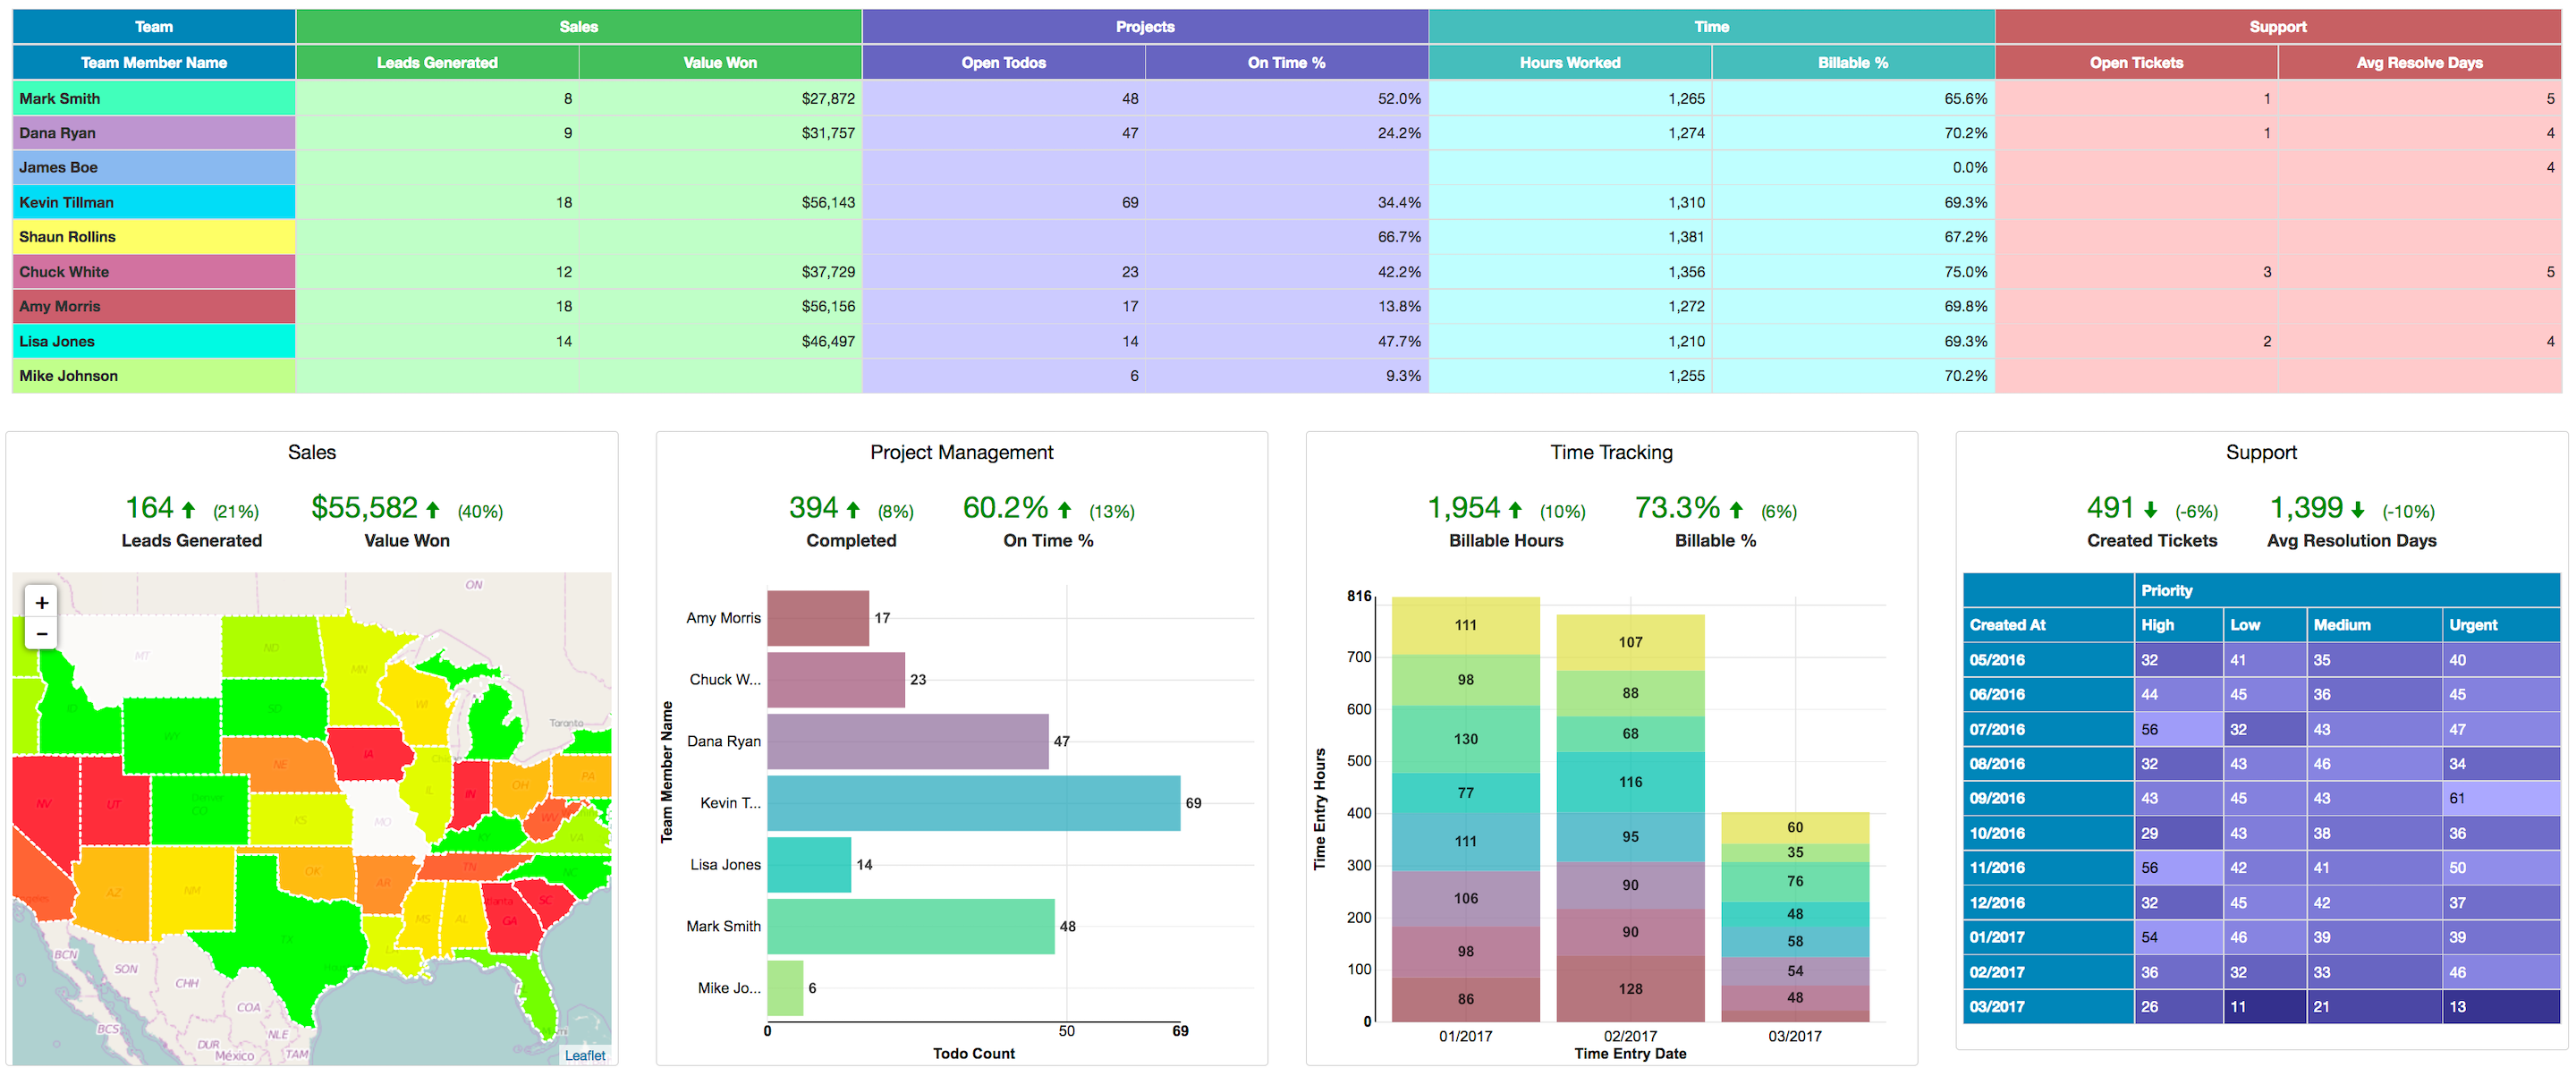 Easy Insight Software - Visualize your business with dashboard spanning the entire range of SaaS applications you use. Take advantage of prebuilt dashboards to get started right away.